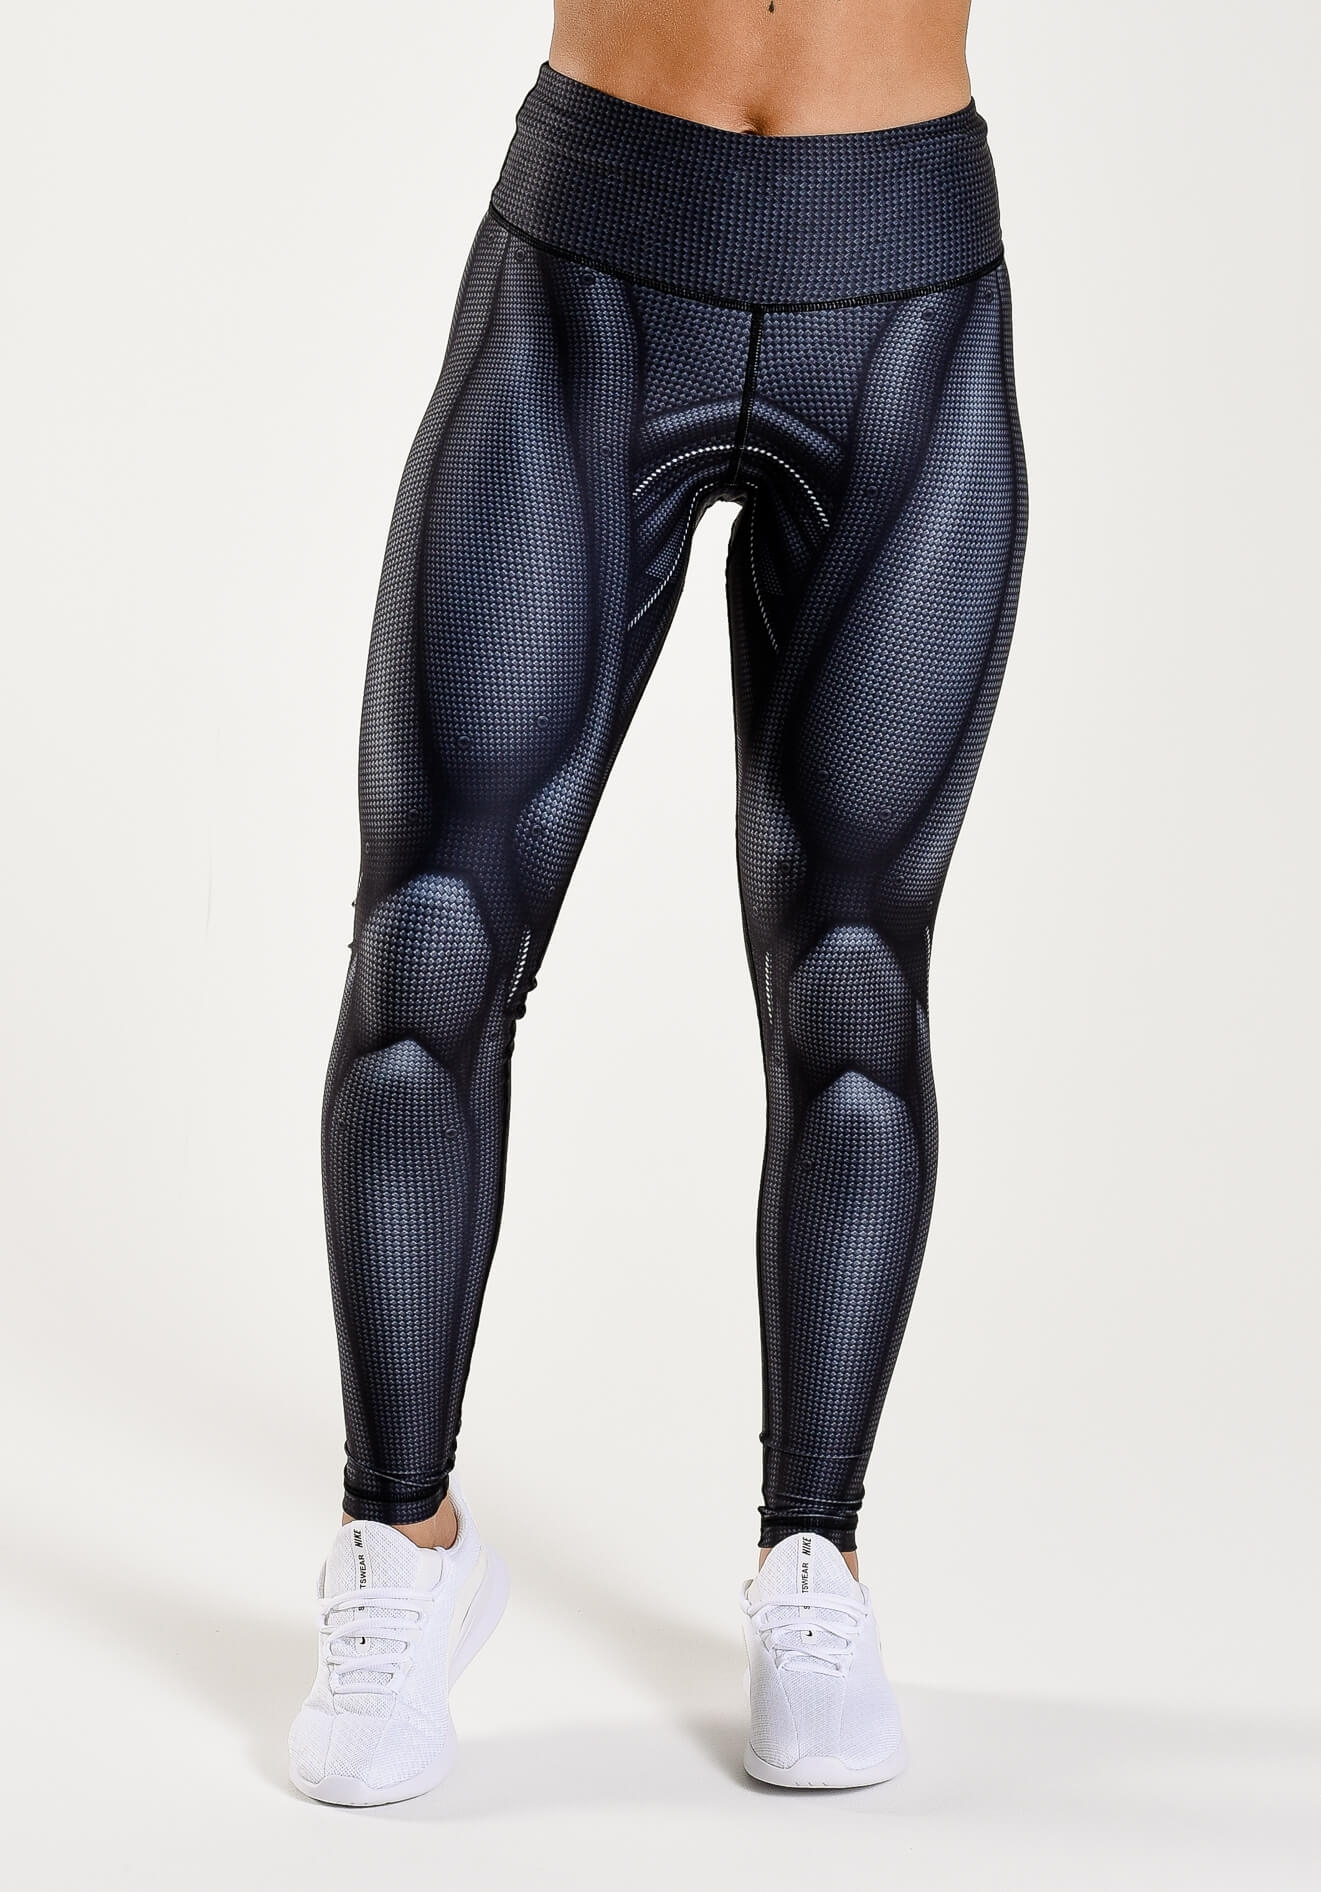 Bulletproof Compression Tights